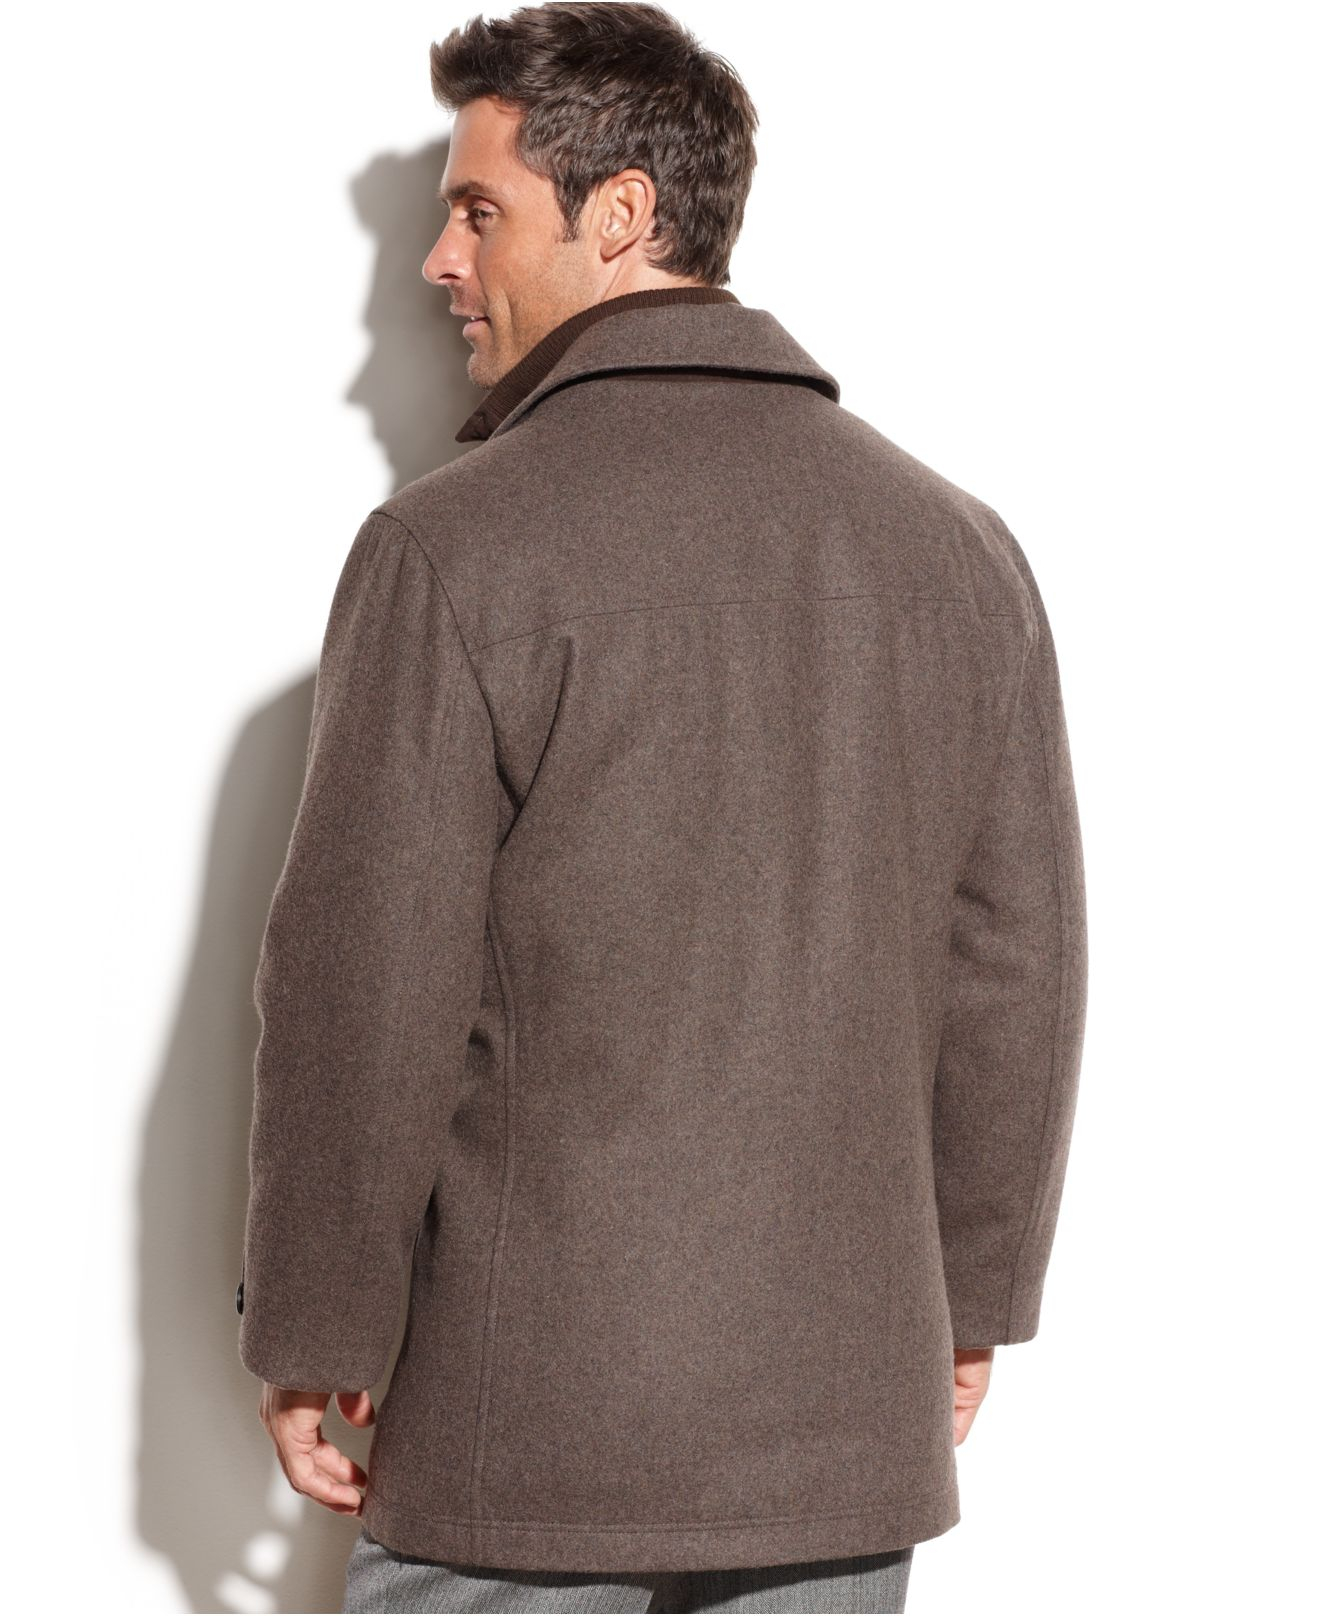 Big And Tall Trench Coats - Tradingbasis